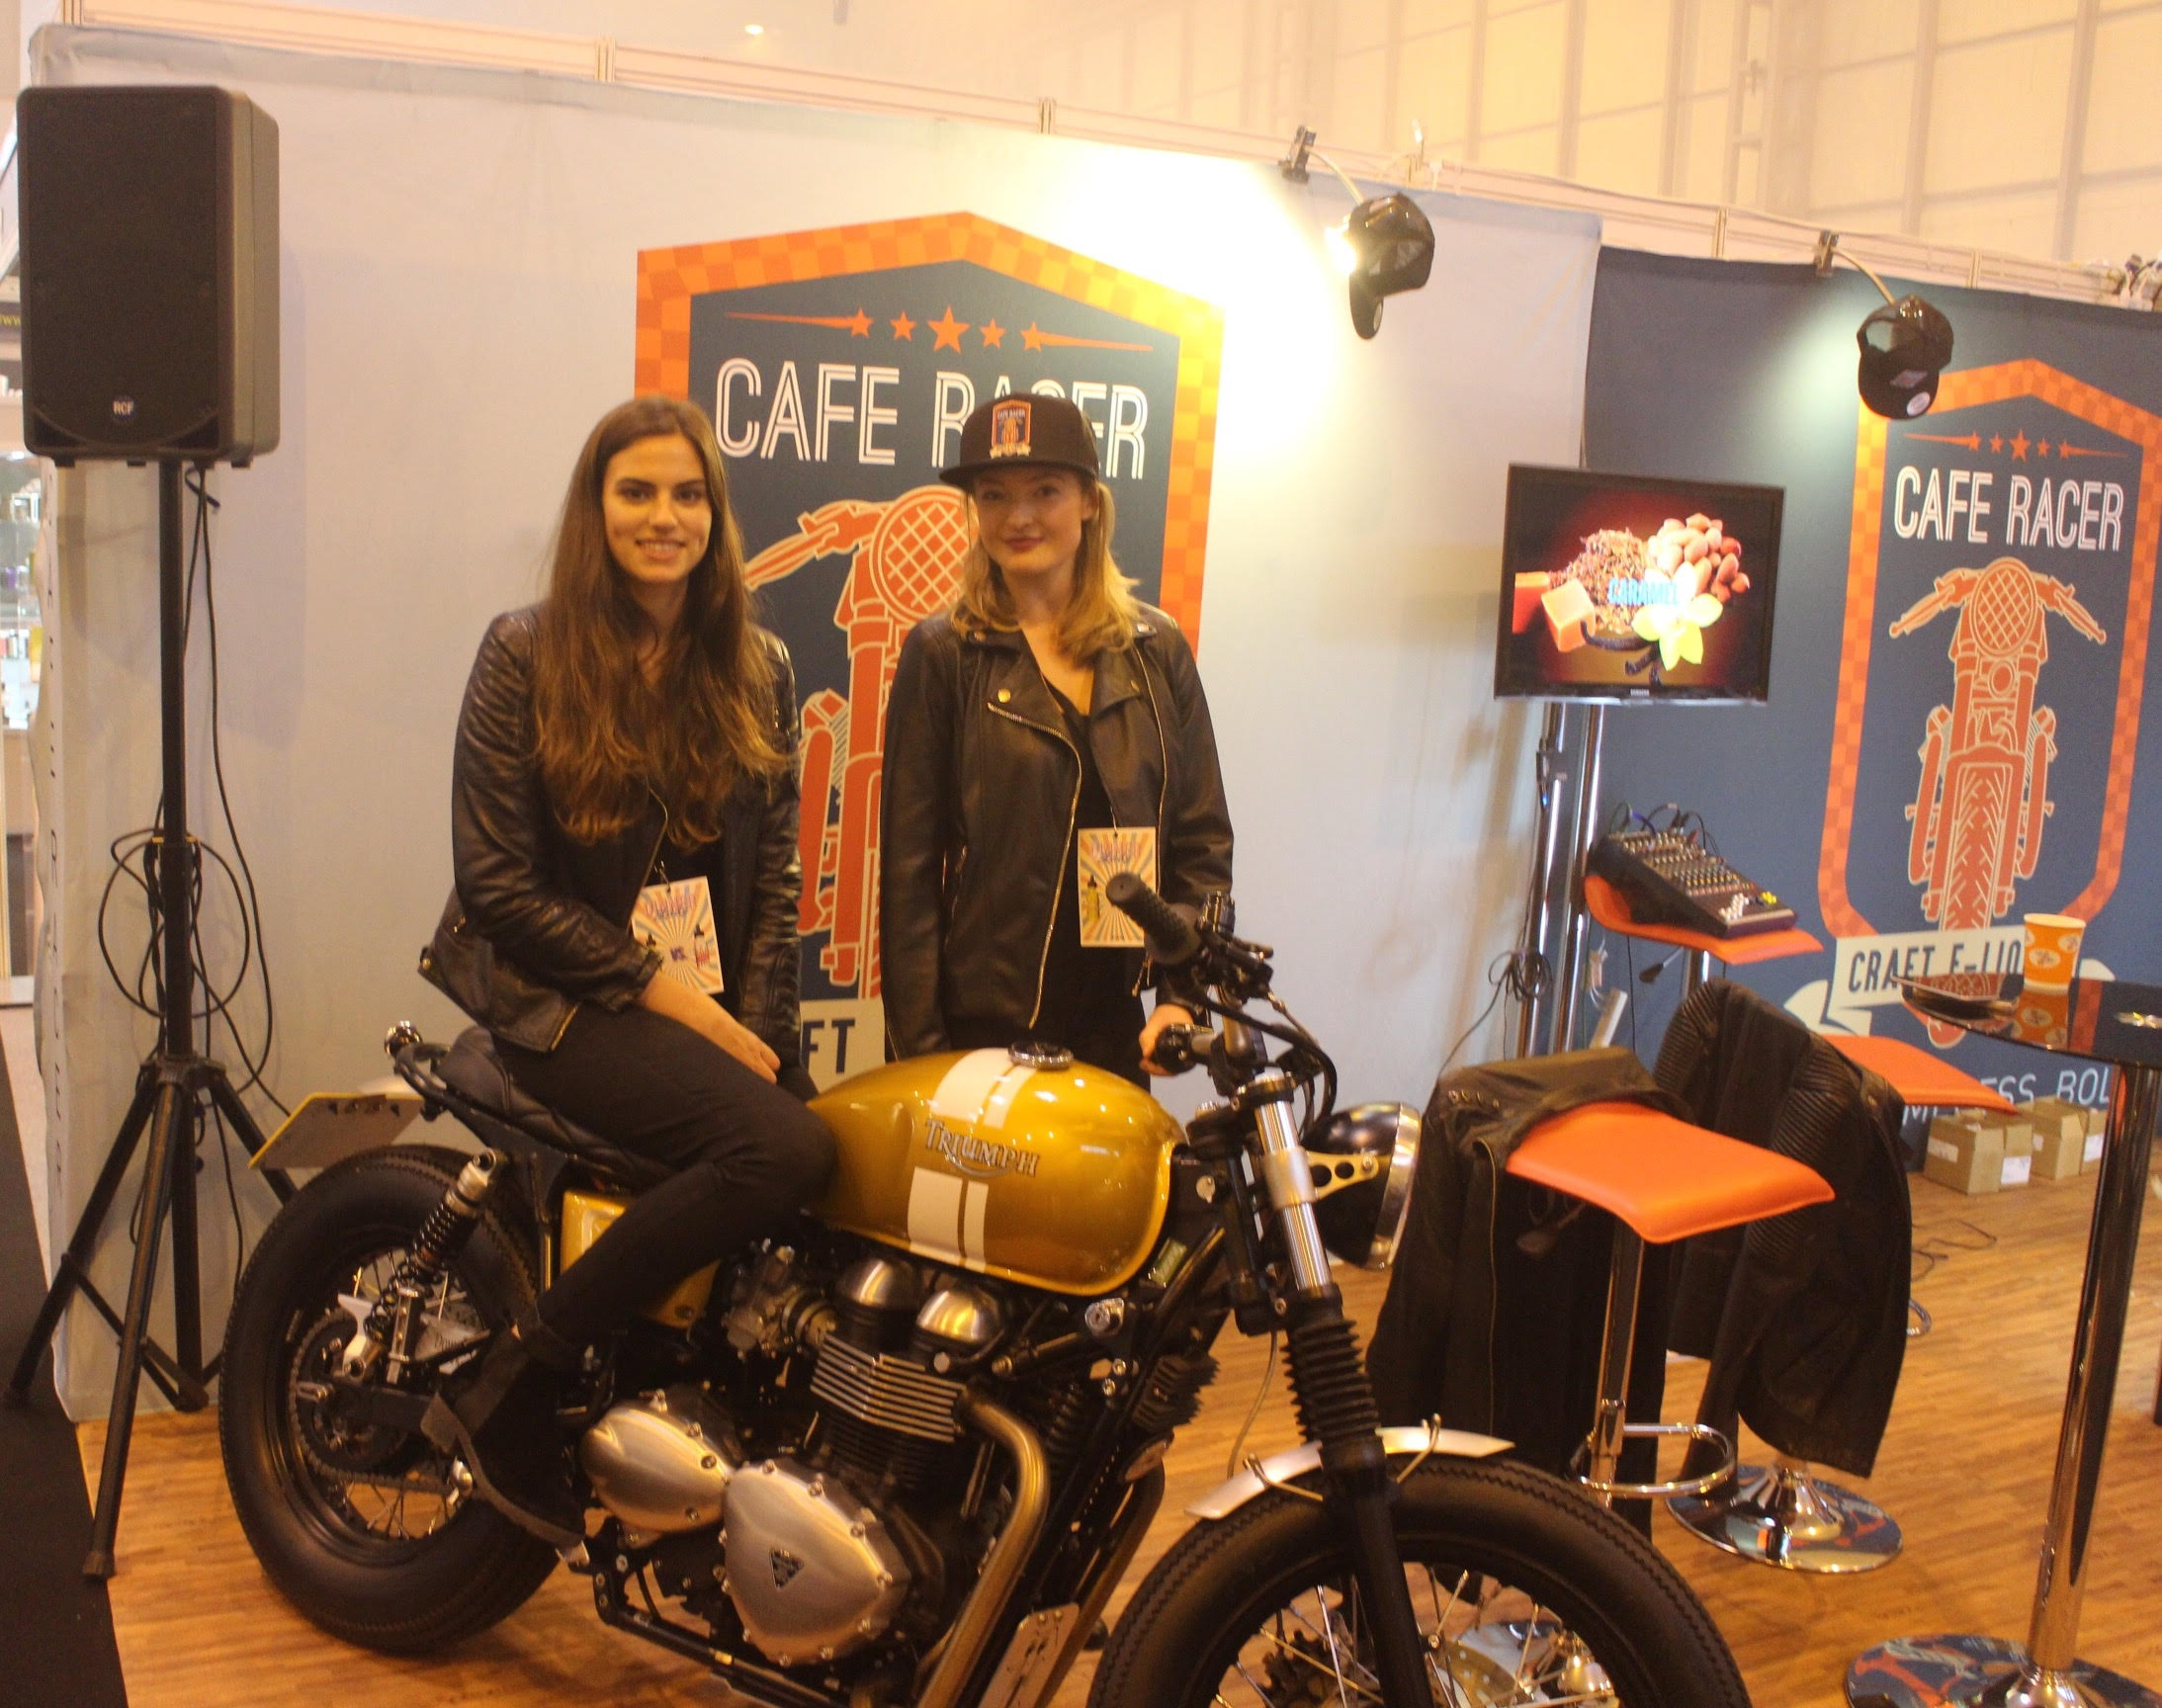 Vaper Expo- CAFE RACER VAPE OCT 2016